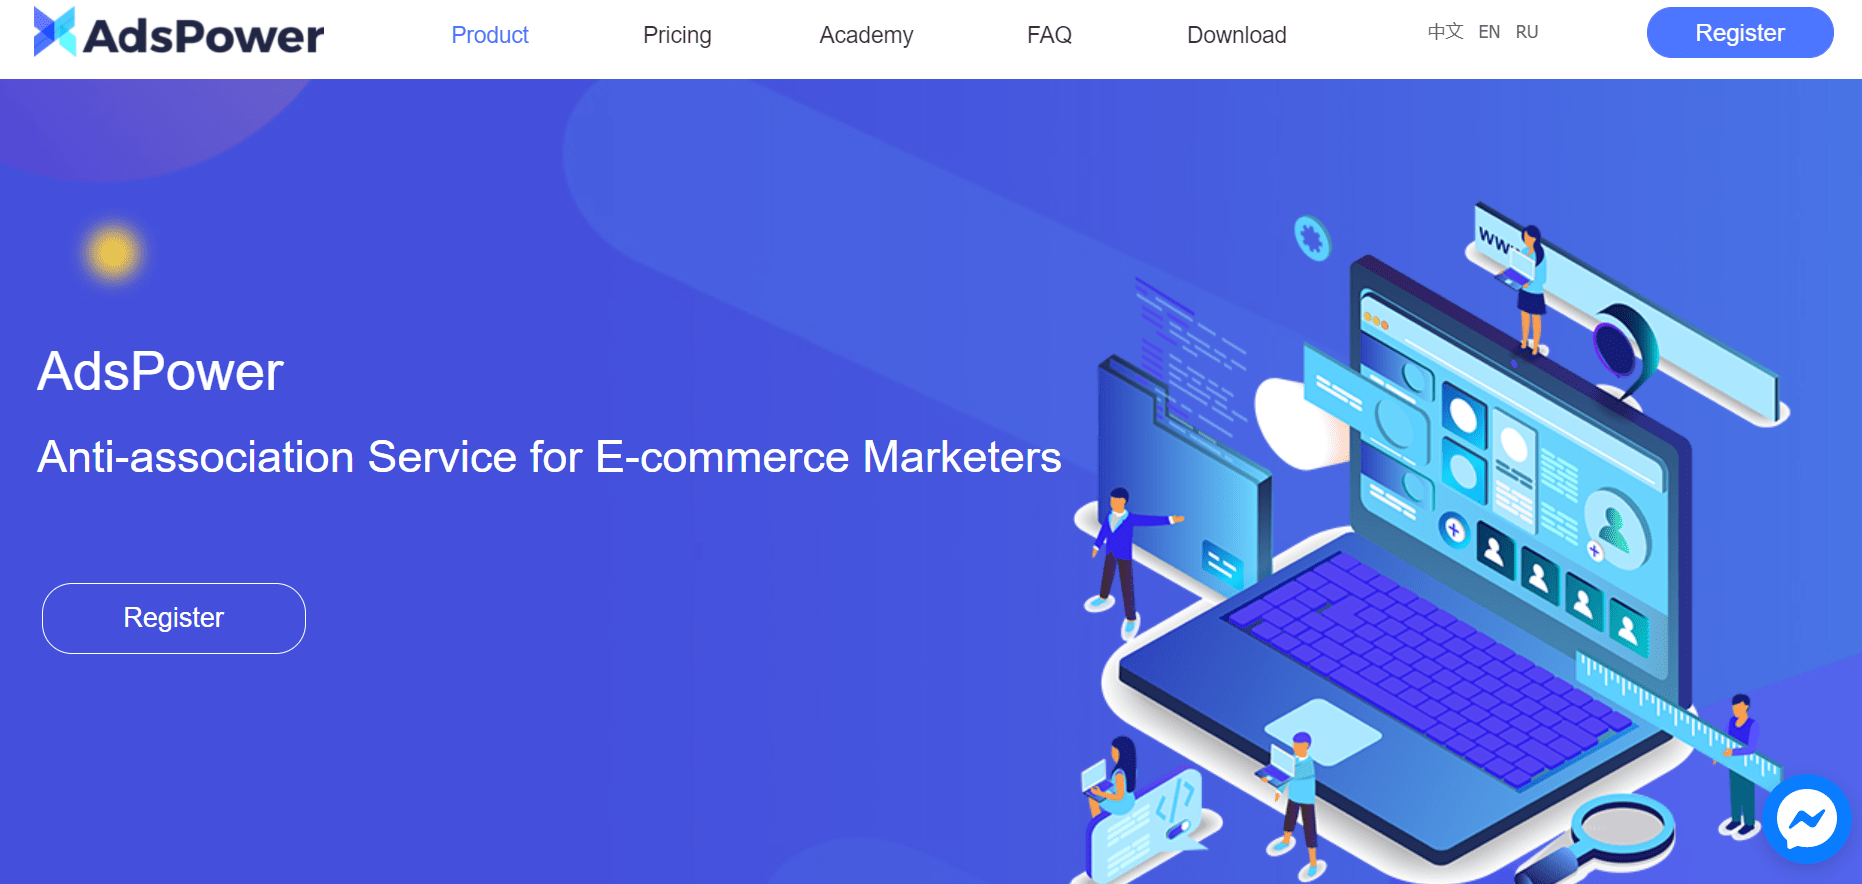 adspower review